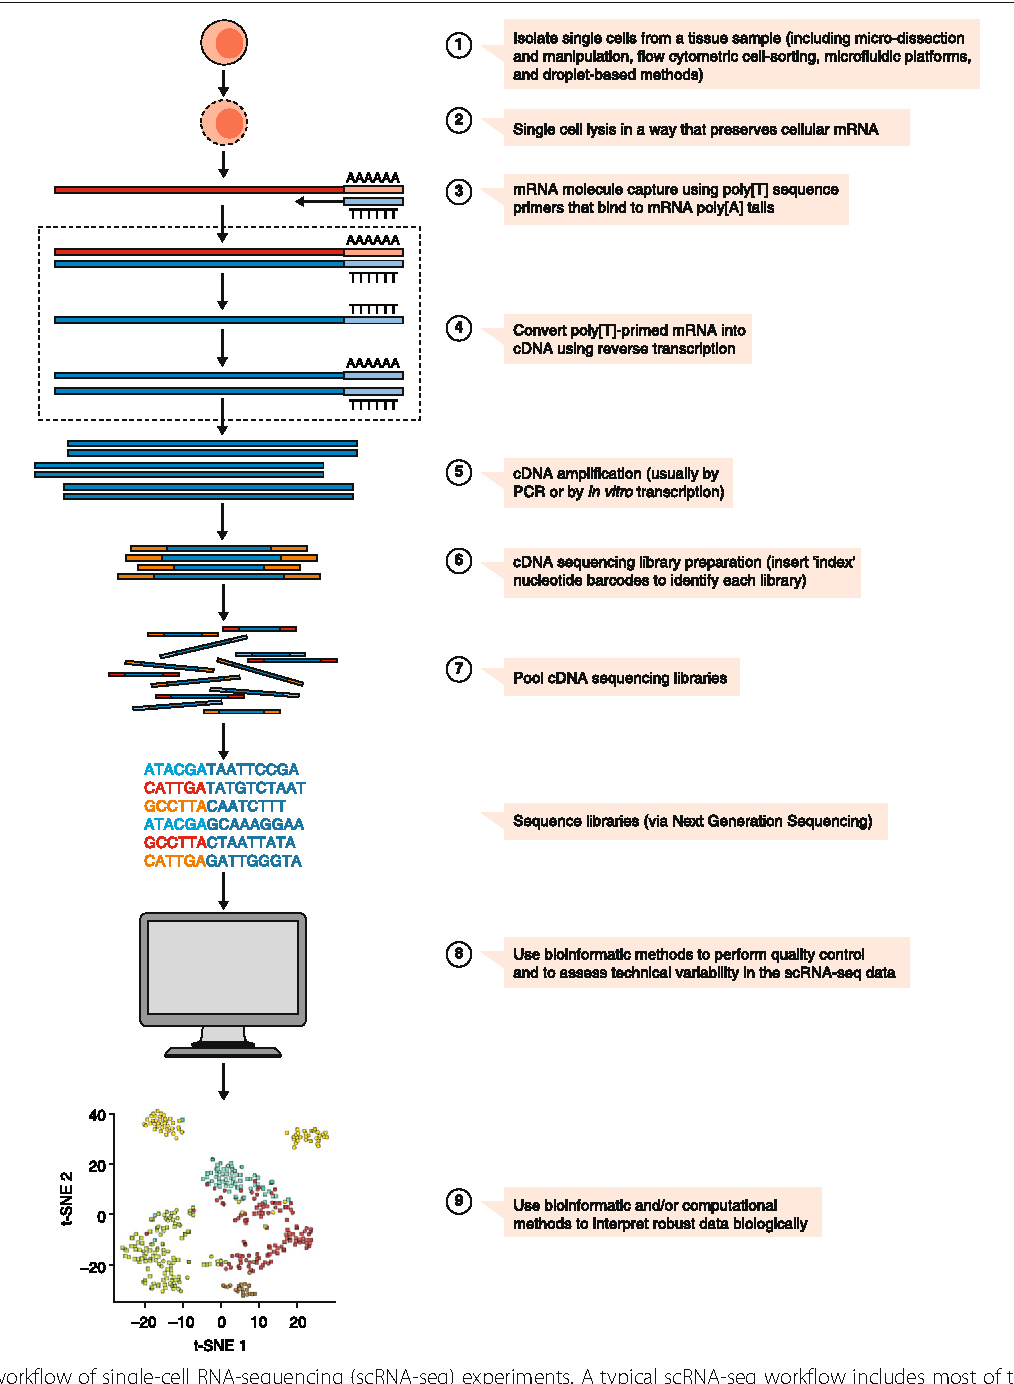 A practical guide to single-cell RNA-sequencing for